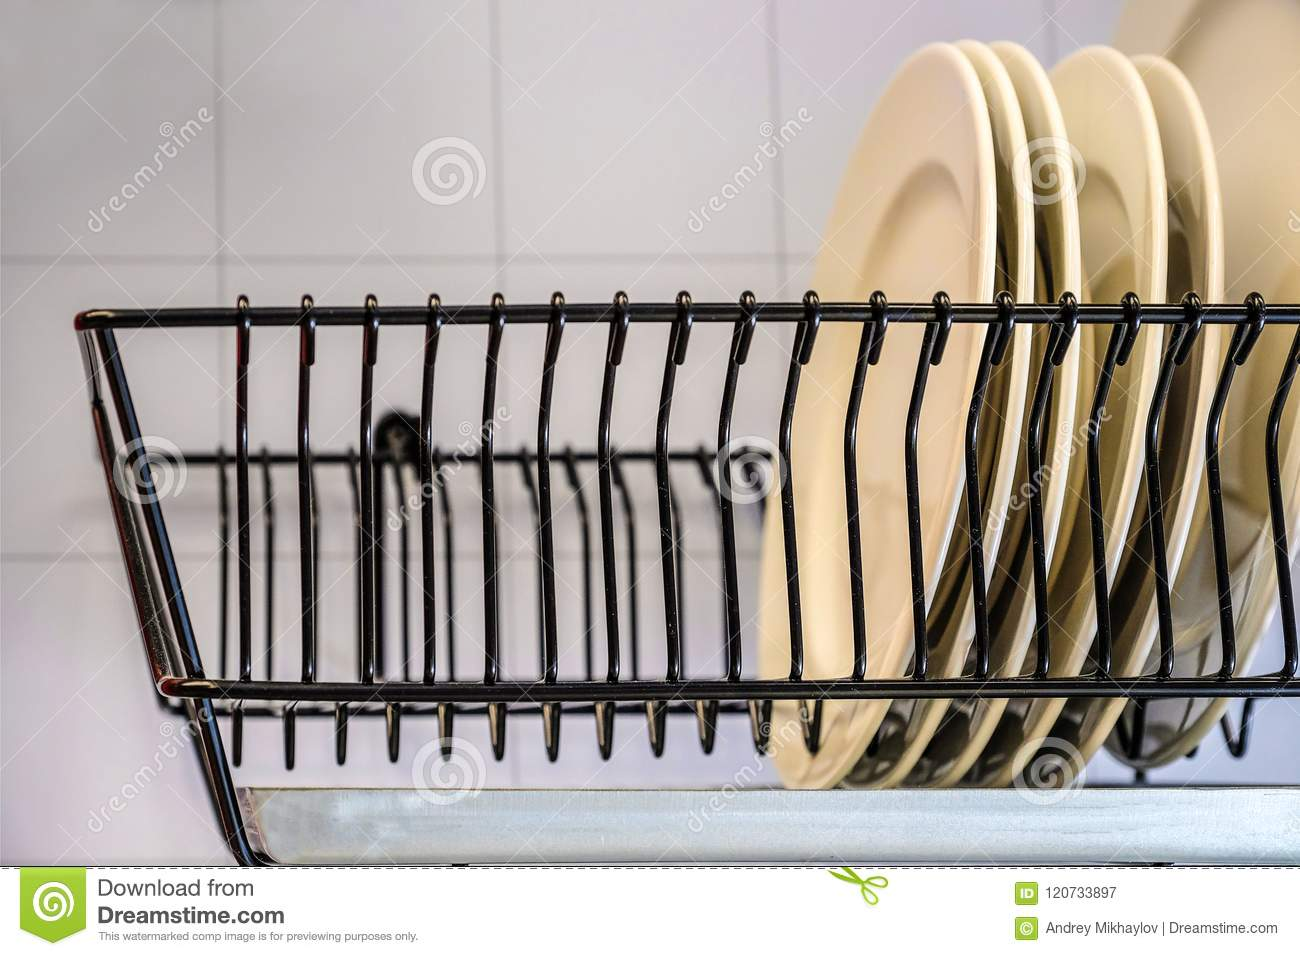 https www dreamstime com white dishes drying metal dish rack drying rack dishes white dishes drying metal dish rack dish drying rack dryer image120733897